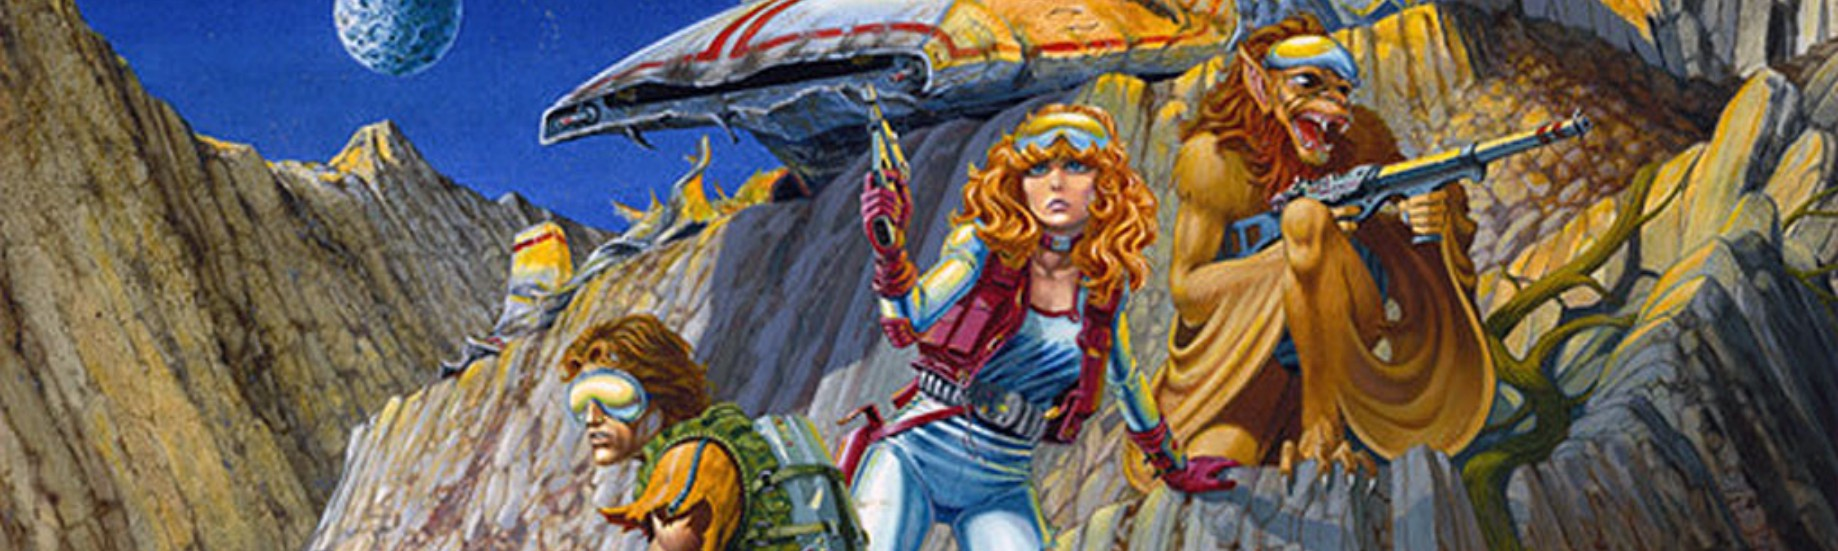 REVIEW] Star Frontiers: D&D's Long Lost Sci-Fi Sibling